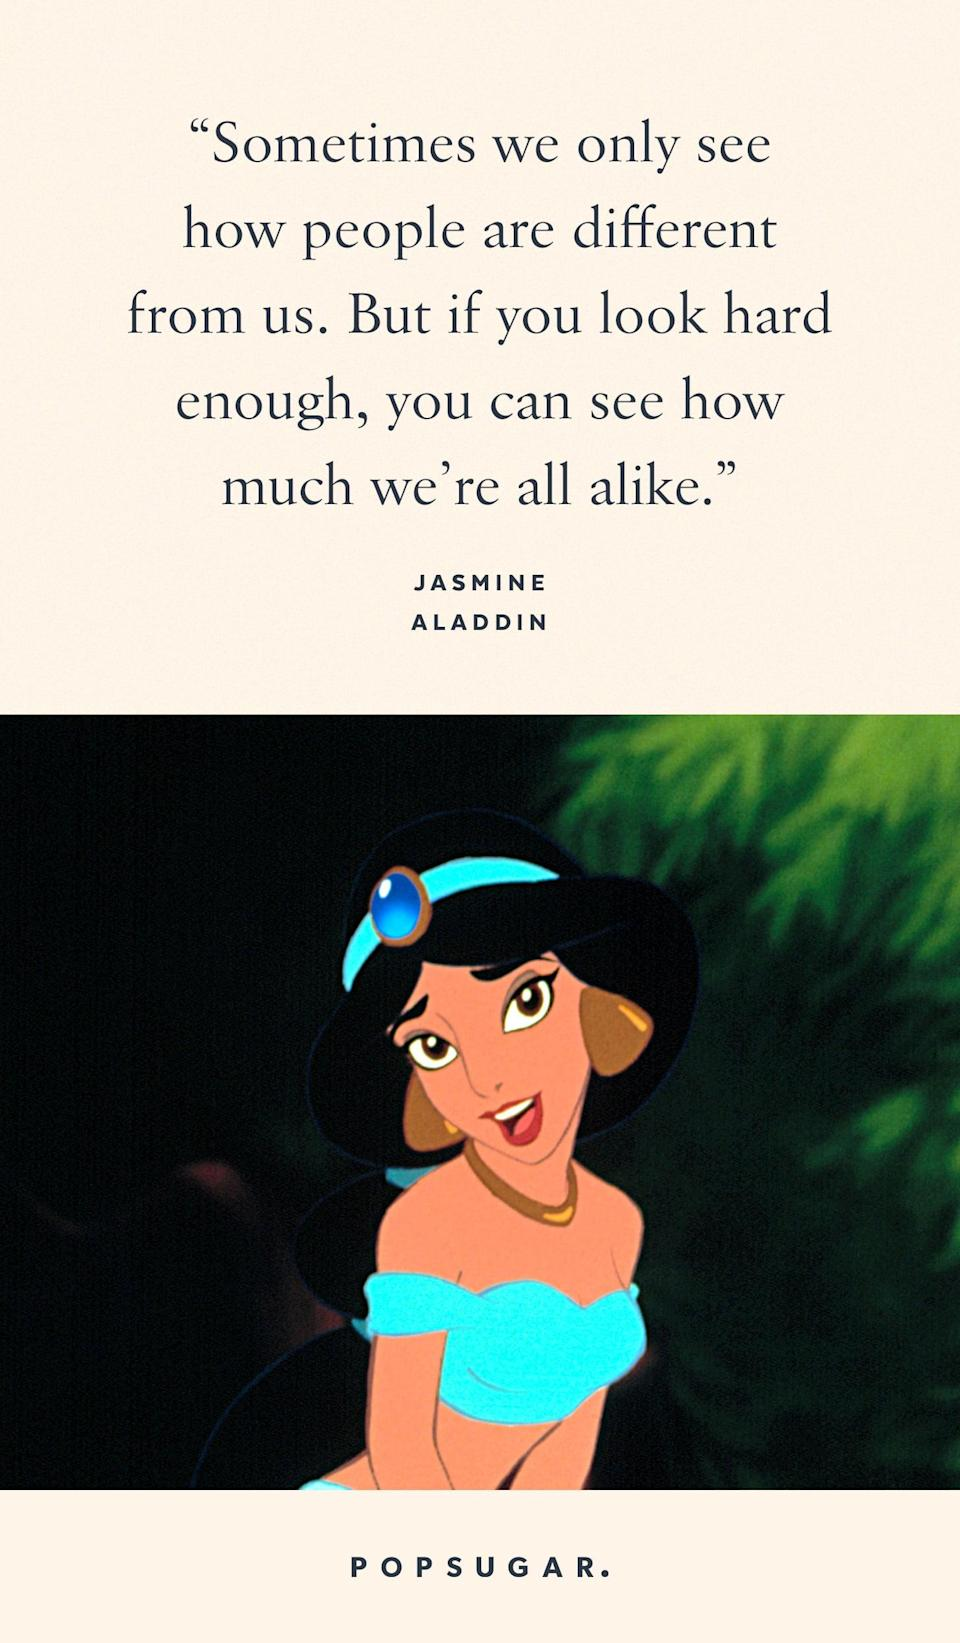 "<p>""Sometimes we only see how people are different from us. But if you look hard enough, you can see how much we're all alike."" - Jasmine, <b>Aladdin</b></p>"